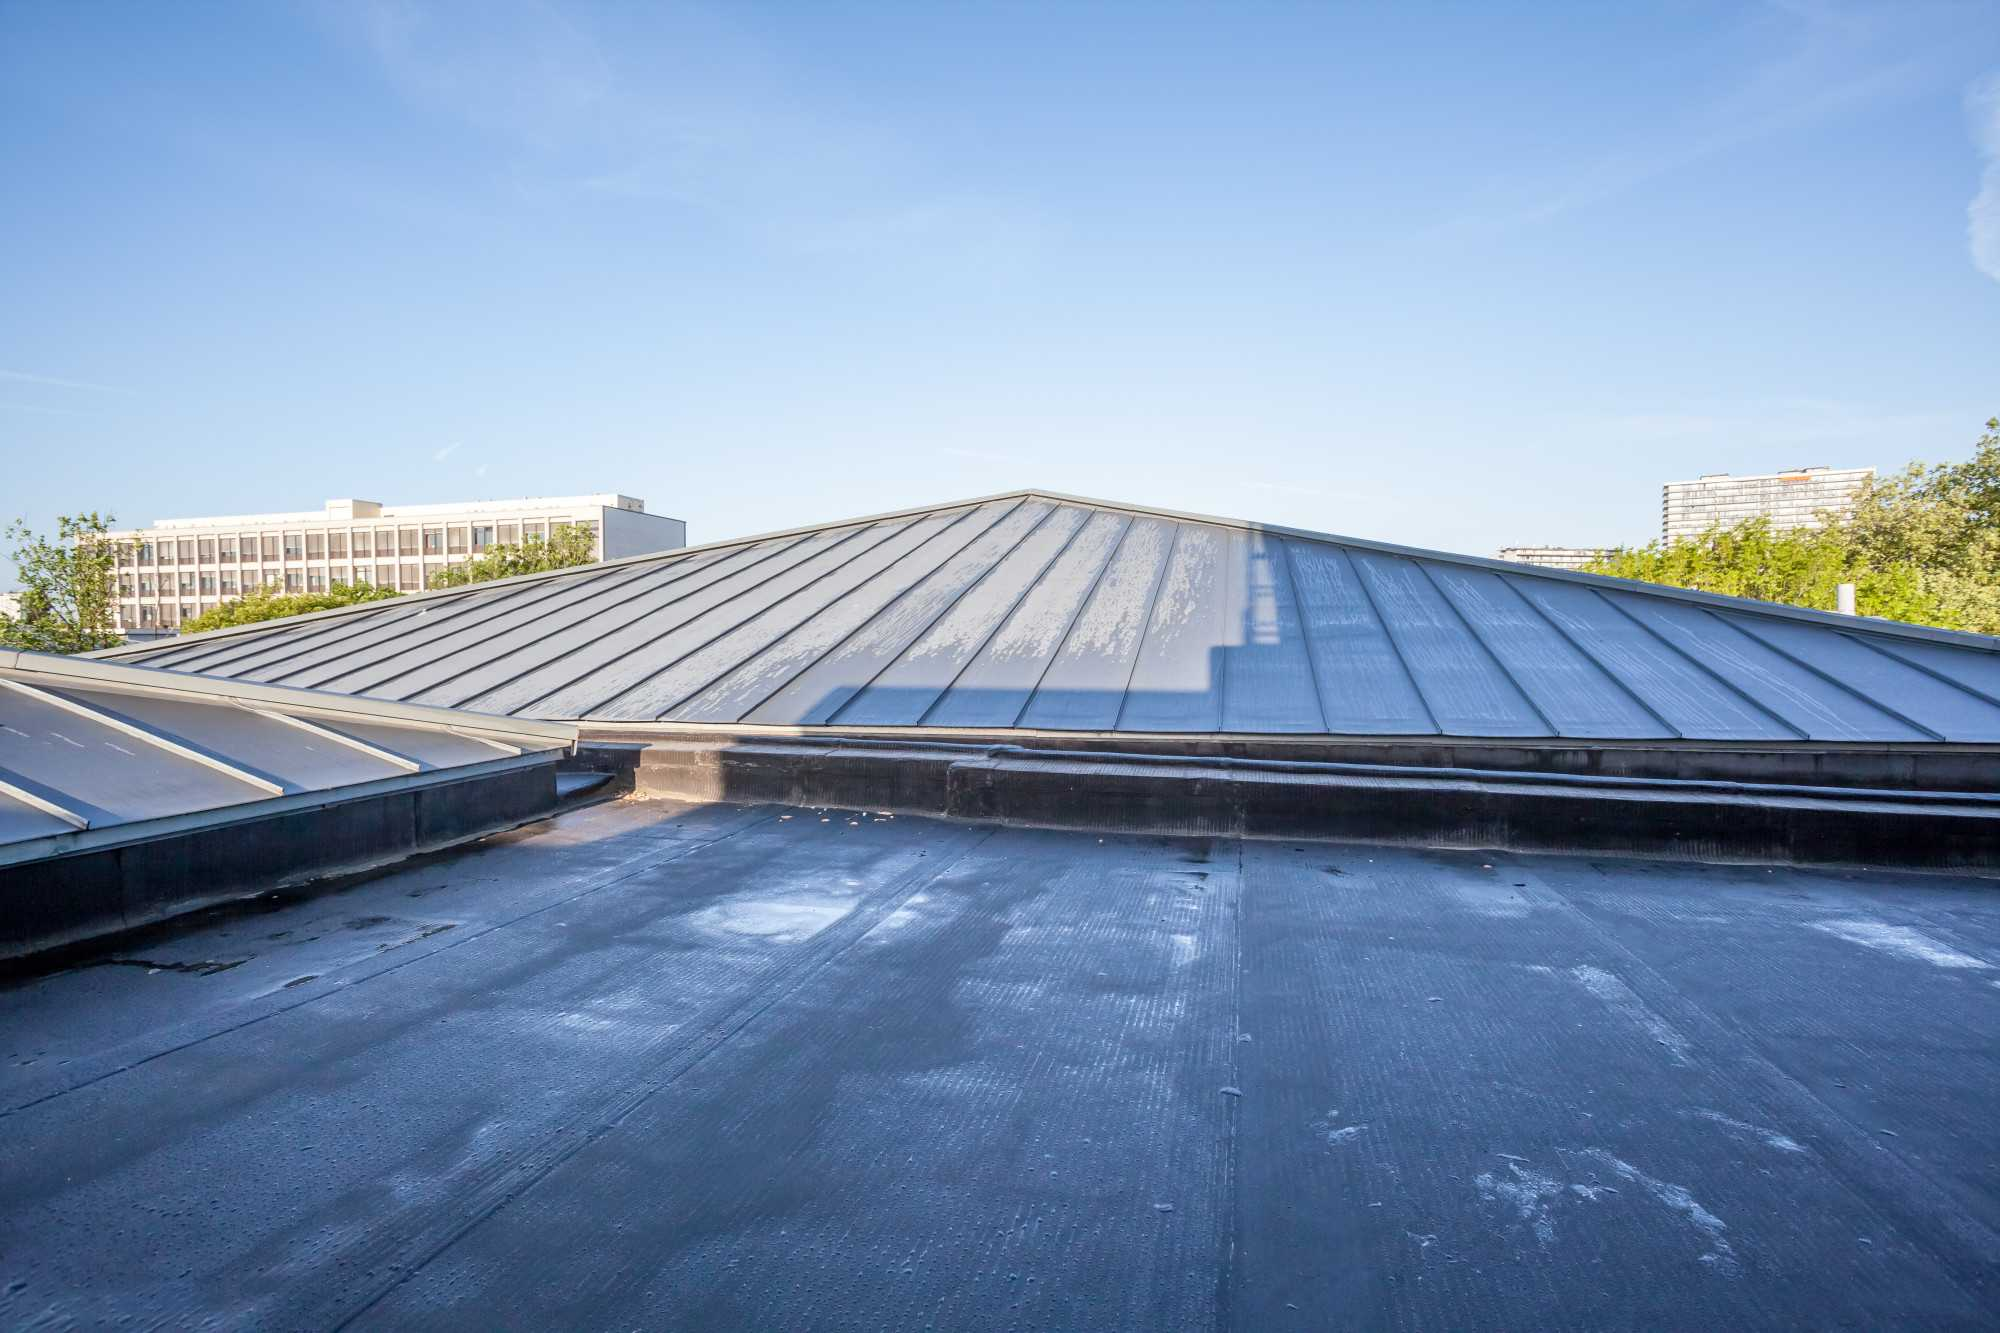 Commercial Roof Inspection Checklist: What to Expect From Professional Services